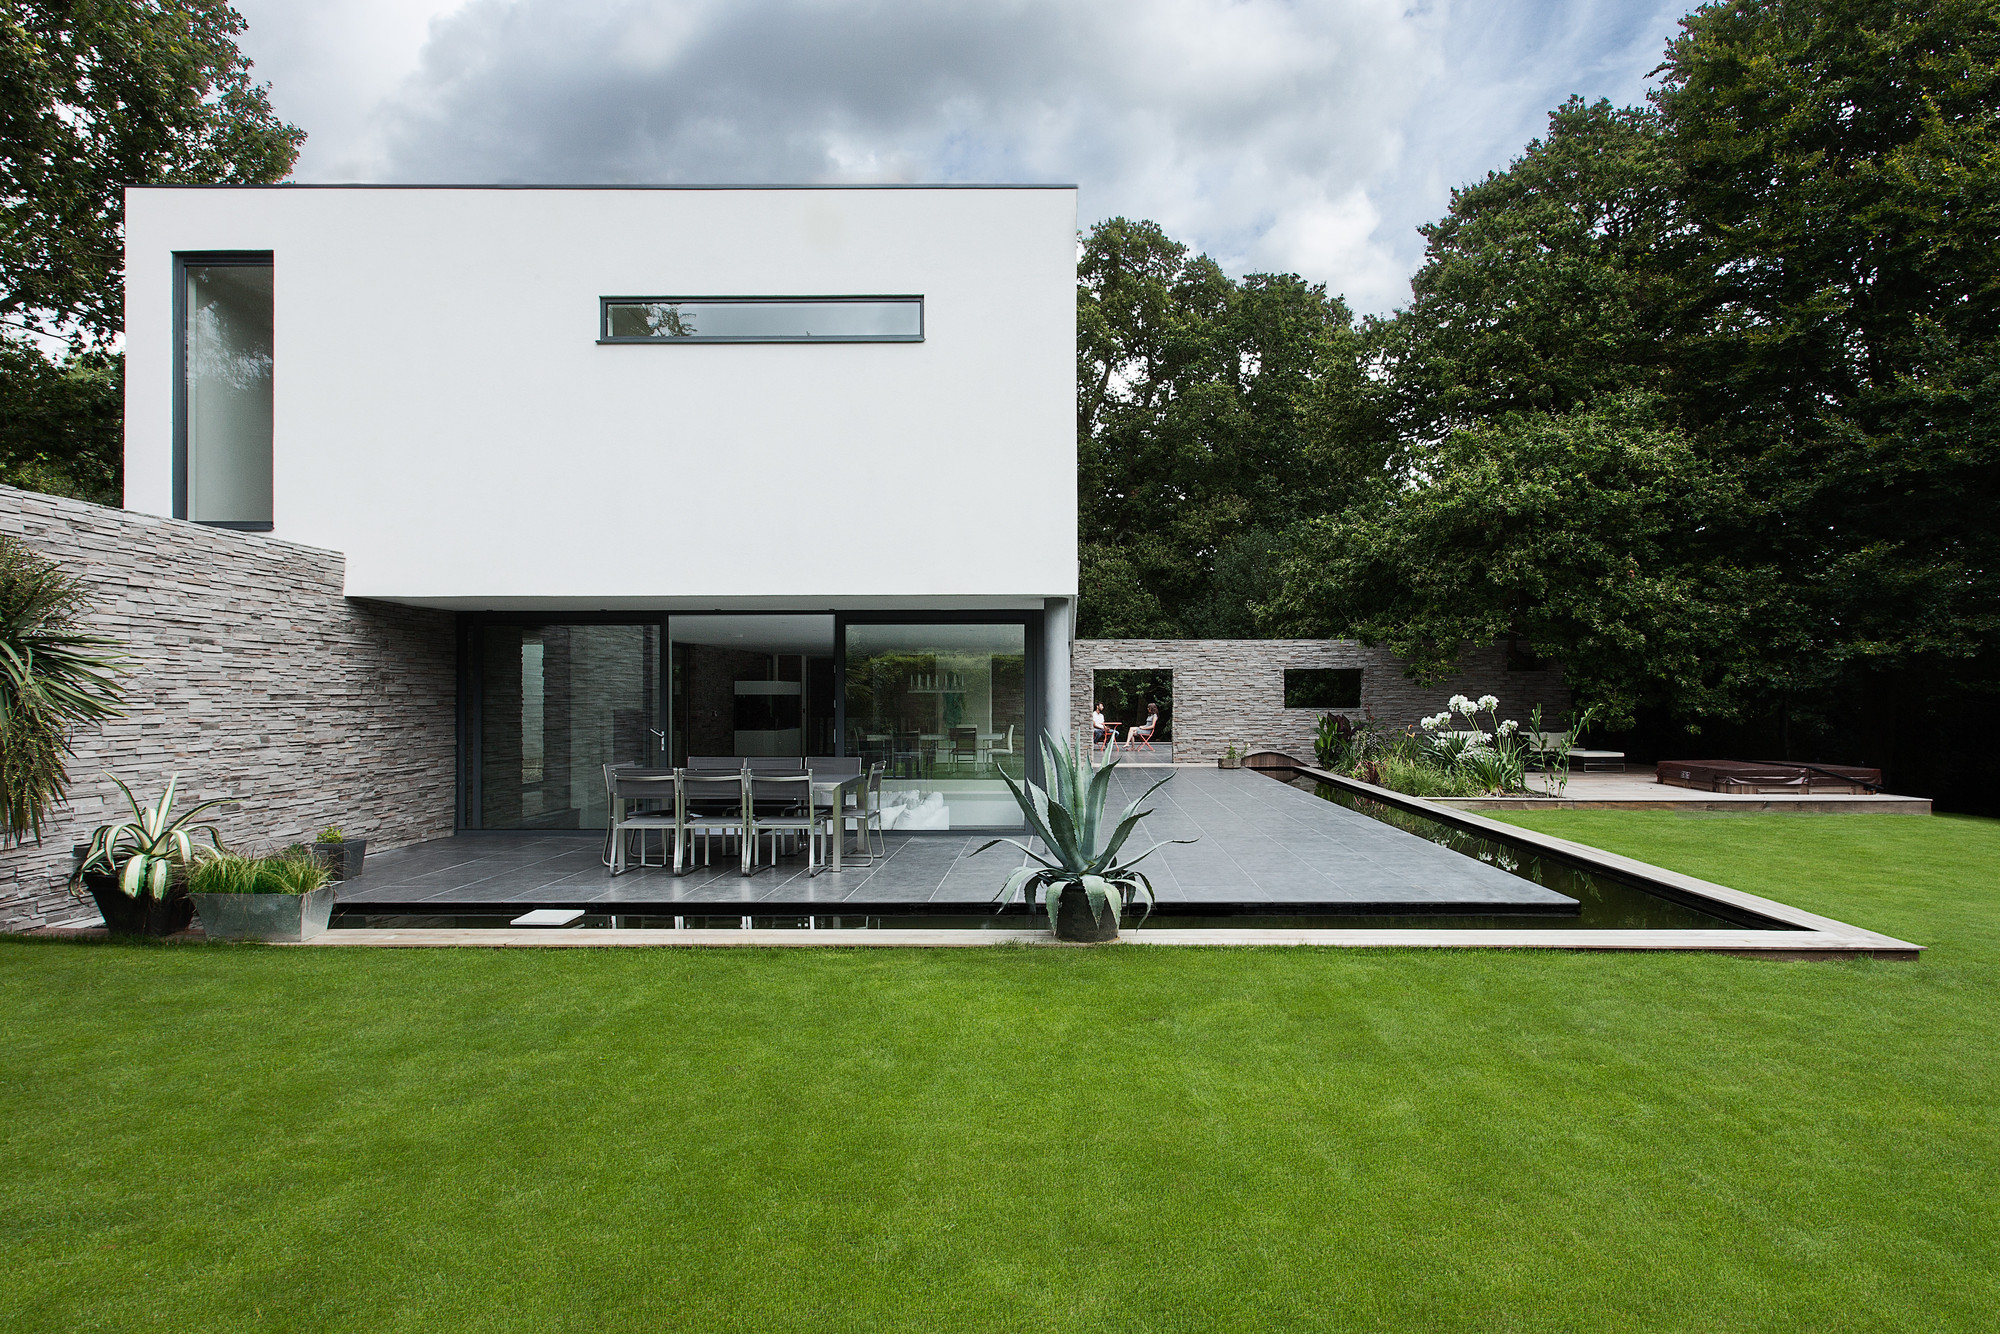 Gallery of abbots way ar design studio 5 for Minimalist house design uk